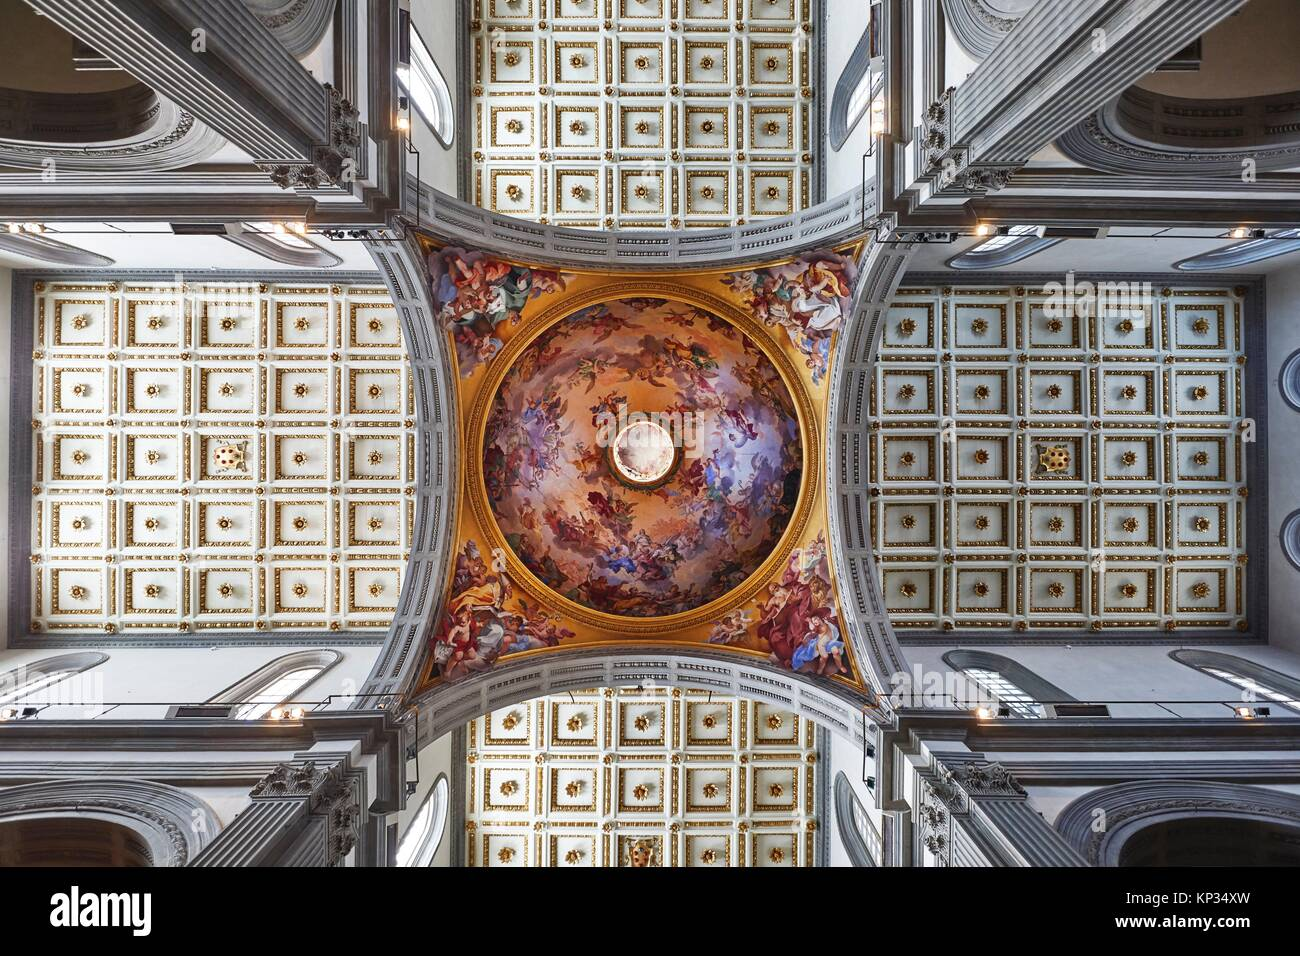 The Basilica di San Lorenzo (Basilica of St Lawrence) is one of the largest churches of Florence, Italy, situated - Stock Image